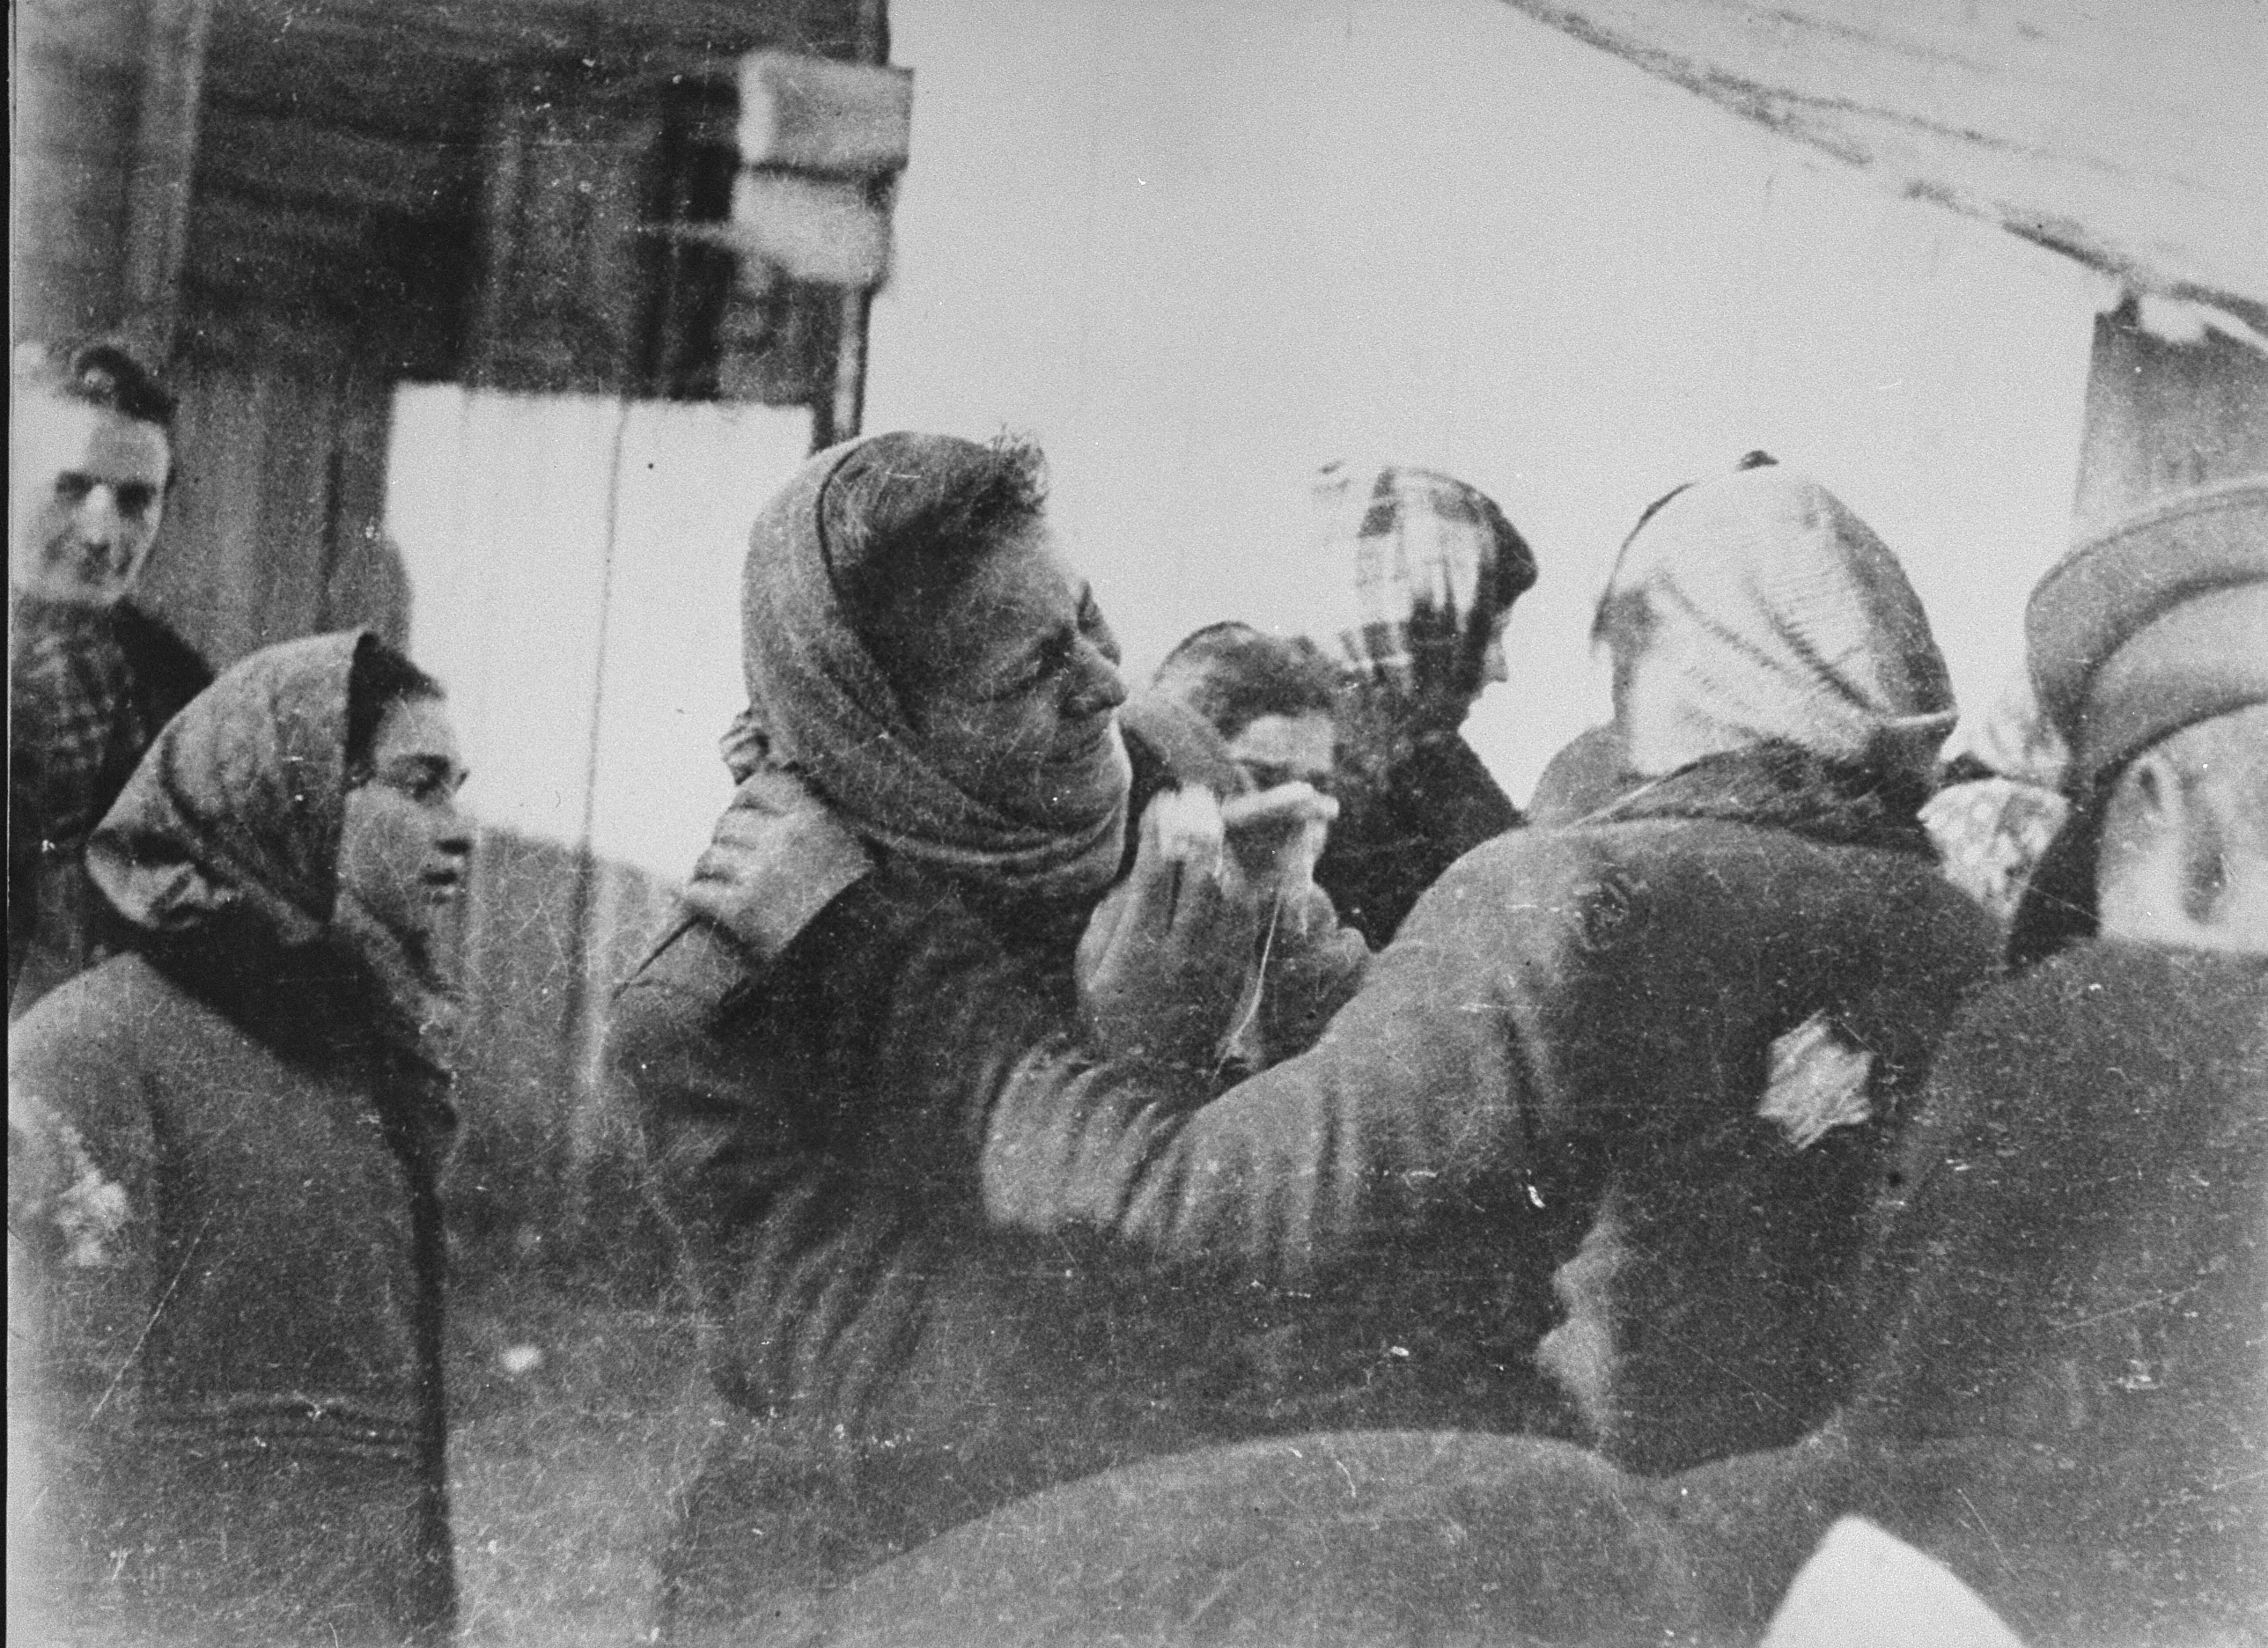 Scene during the deportation of Jews from the Kovno ghetto